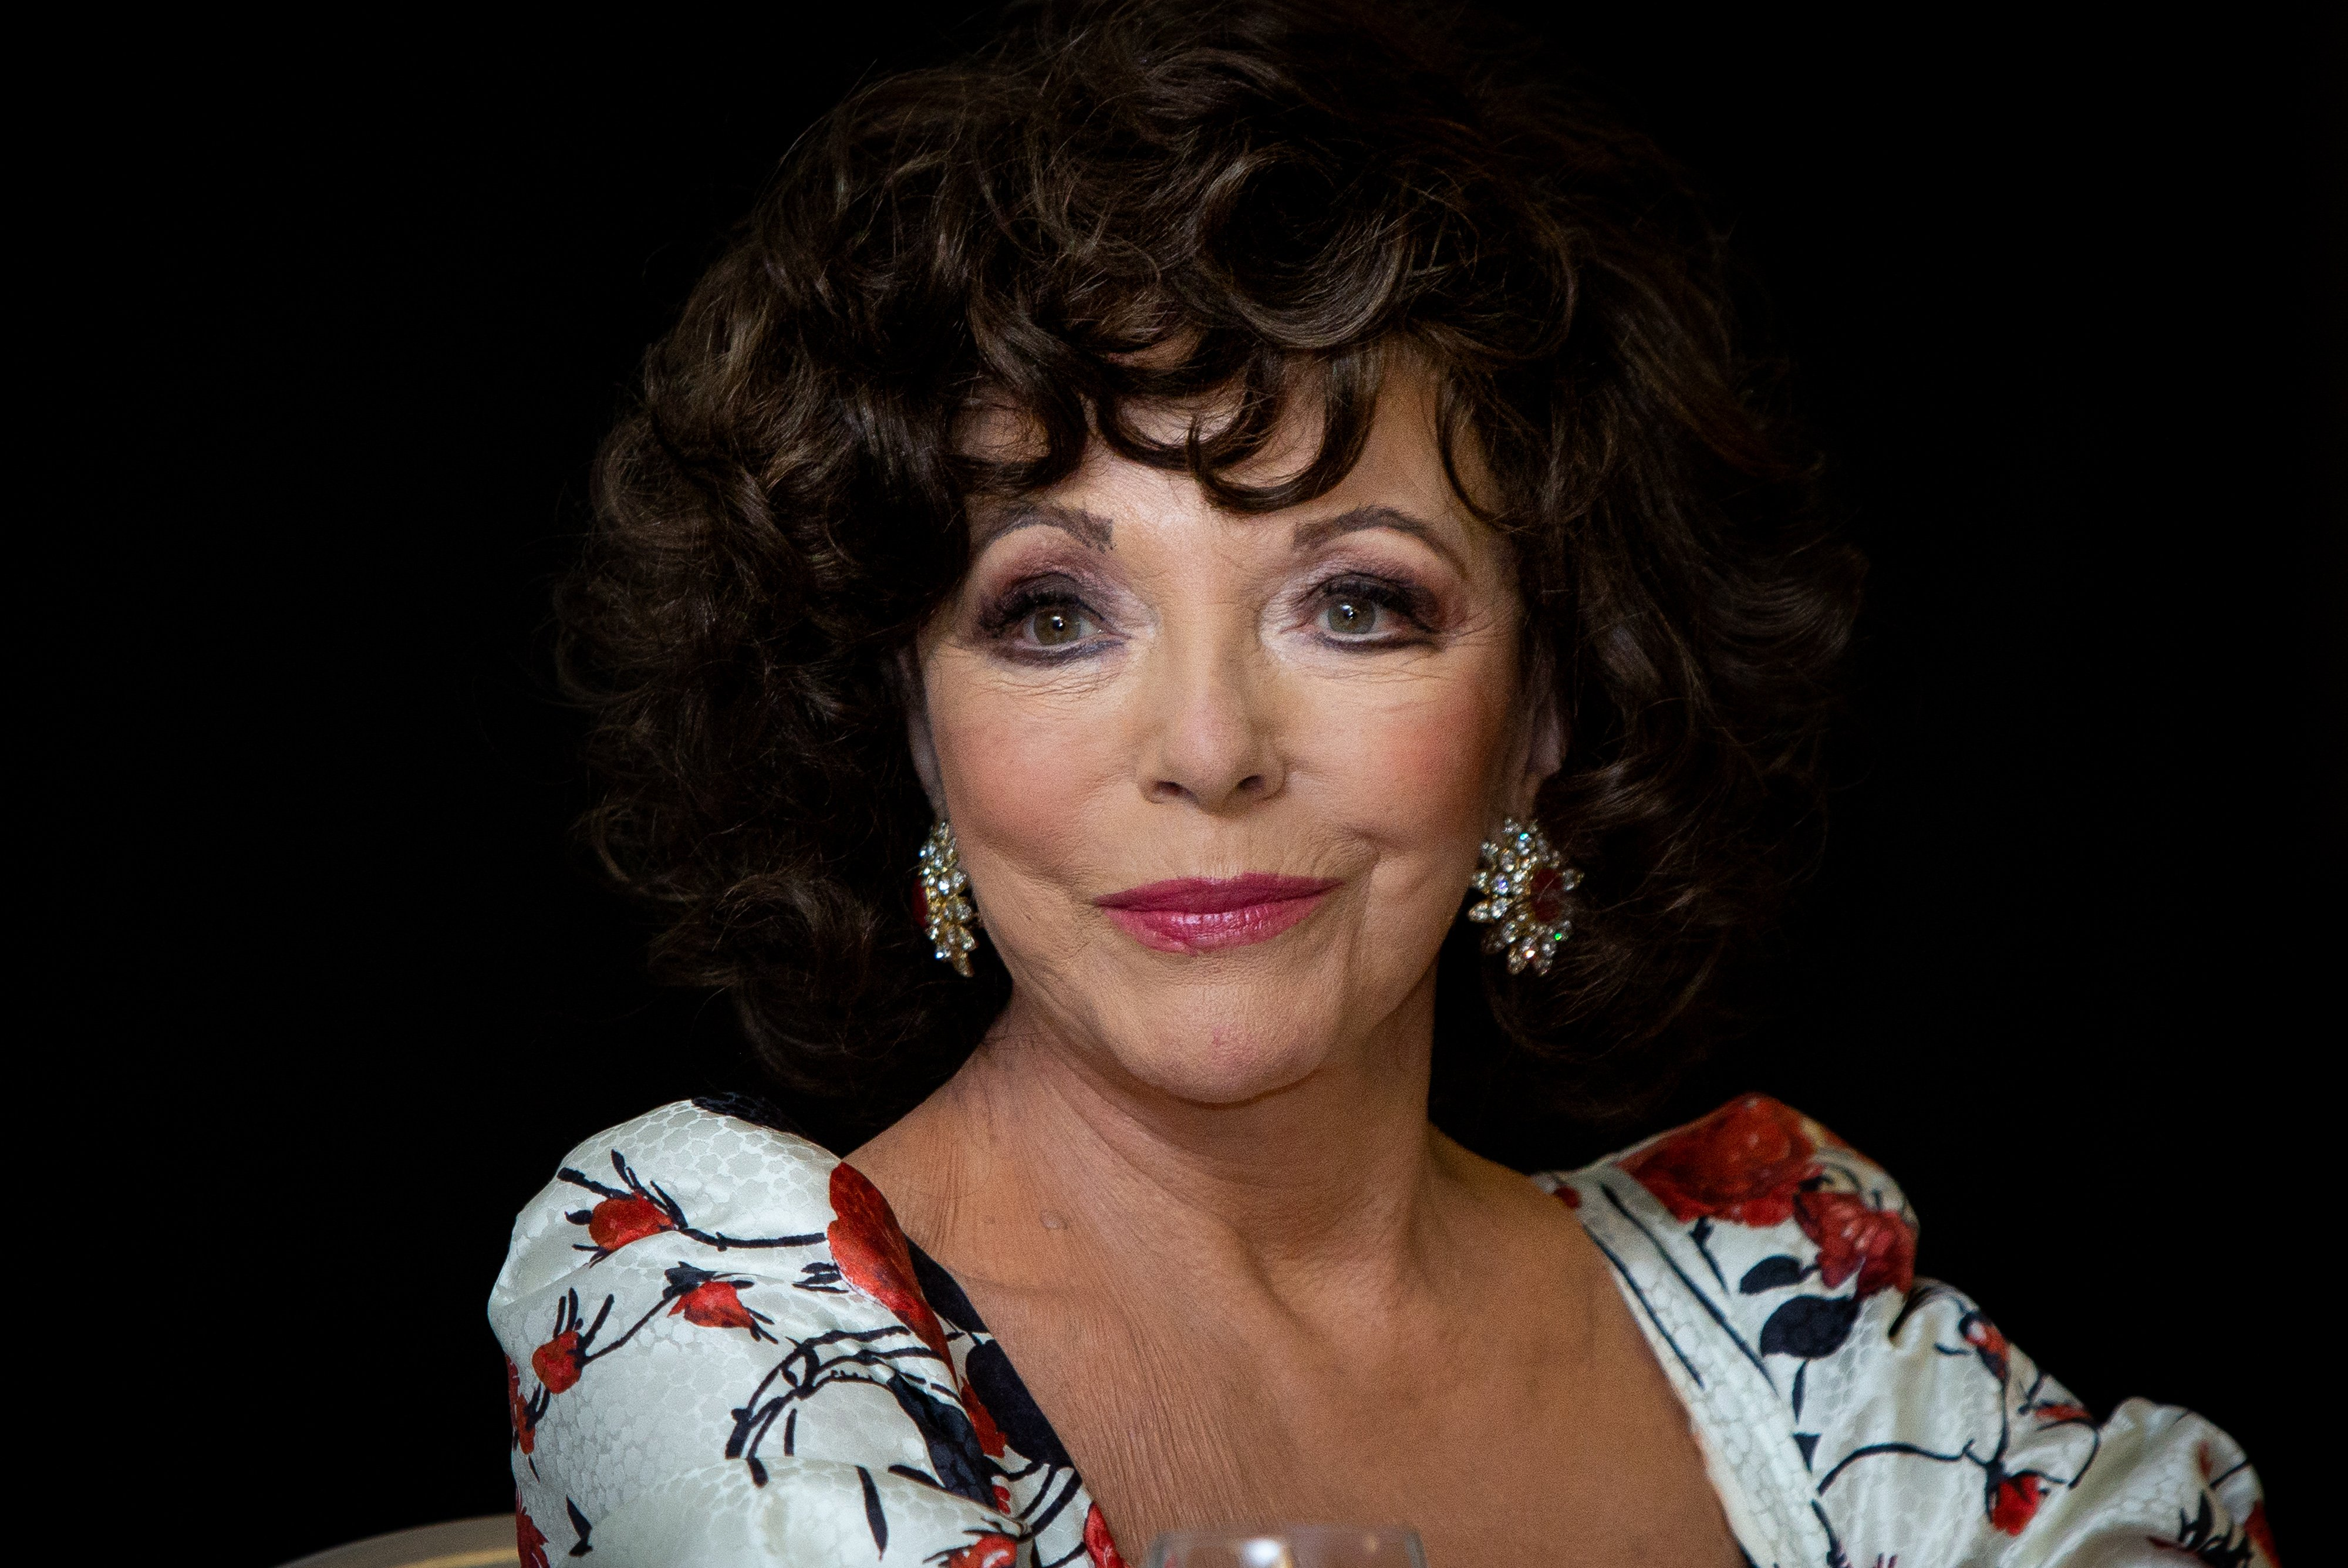 Joan Collins im Westin Palace Hotel am 26. Oktober 2020 in Madrid, Spanien.   Quelle: Getty Images